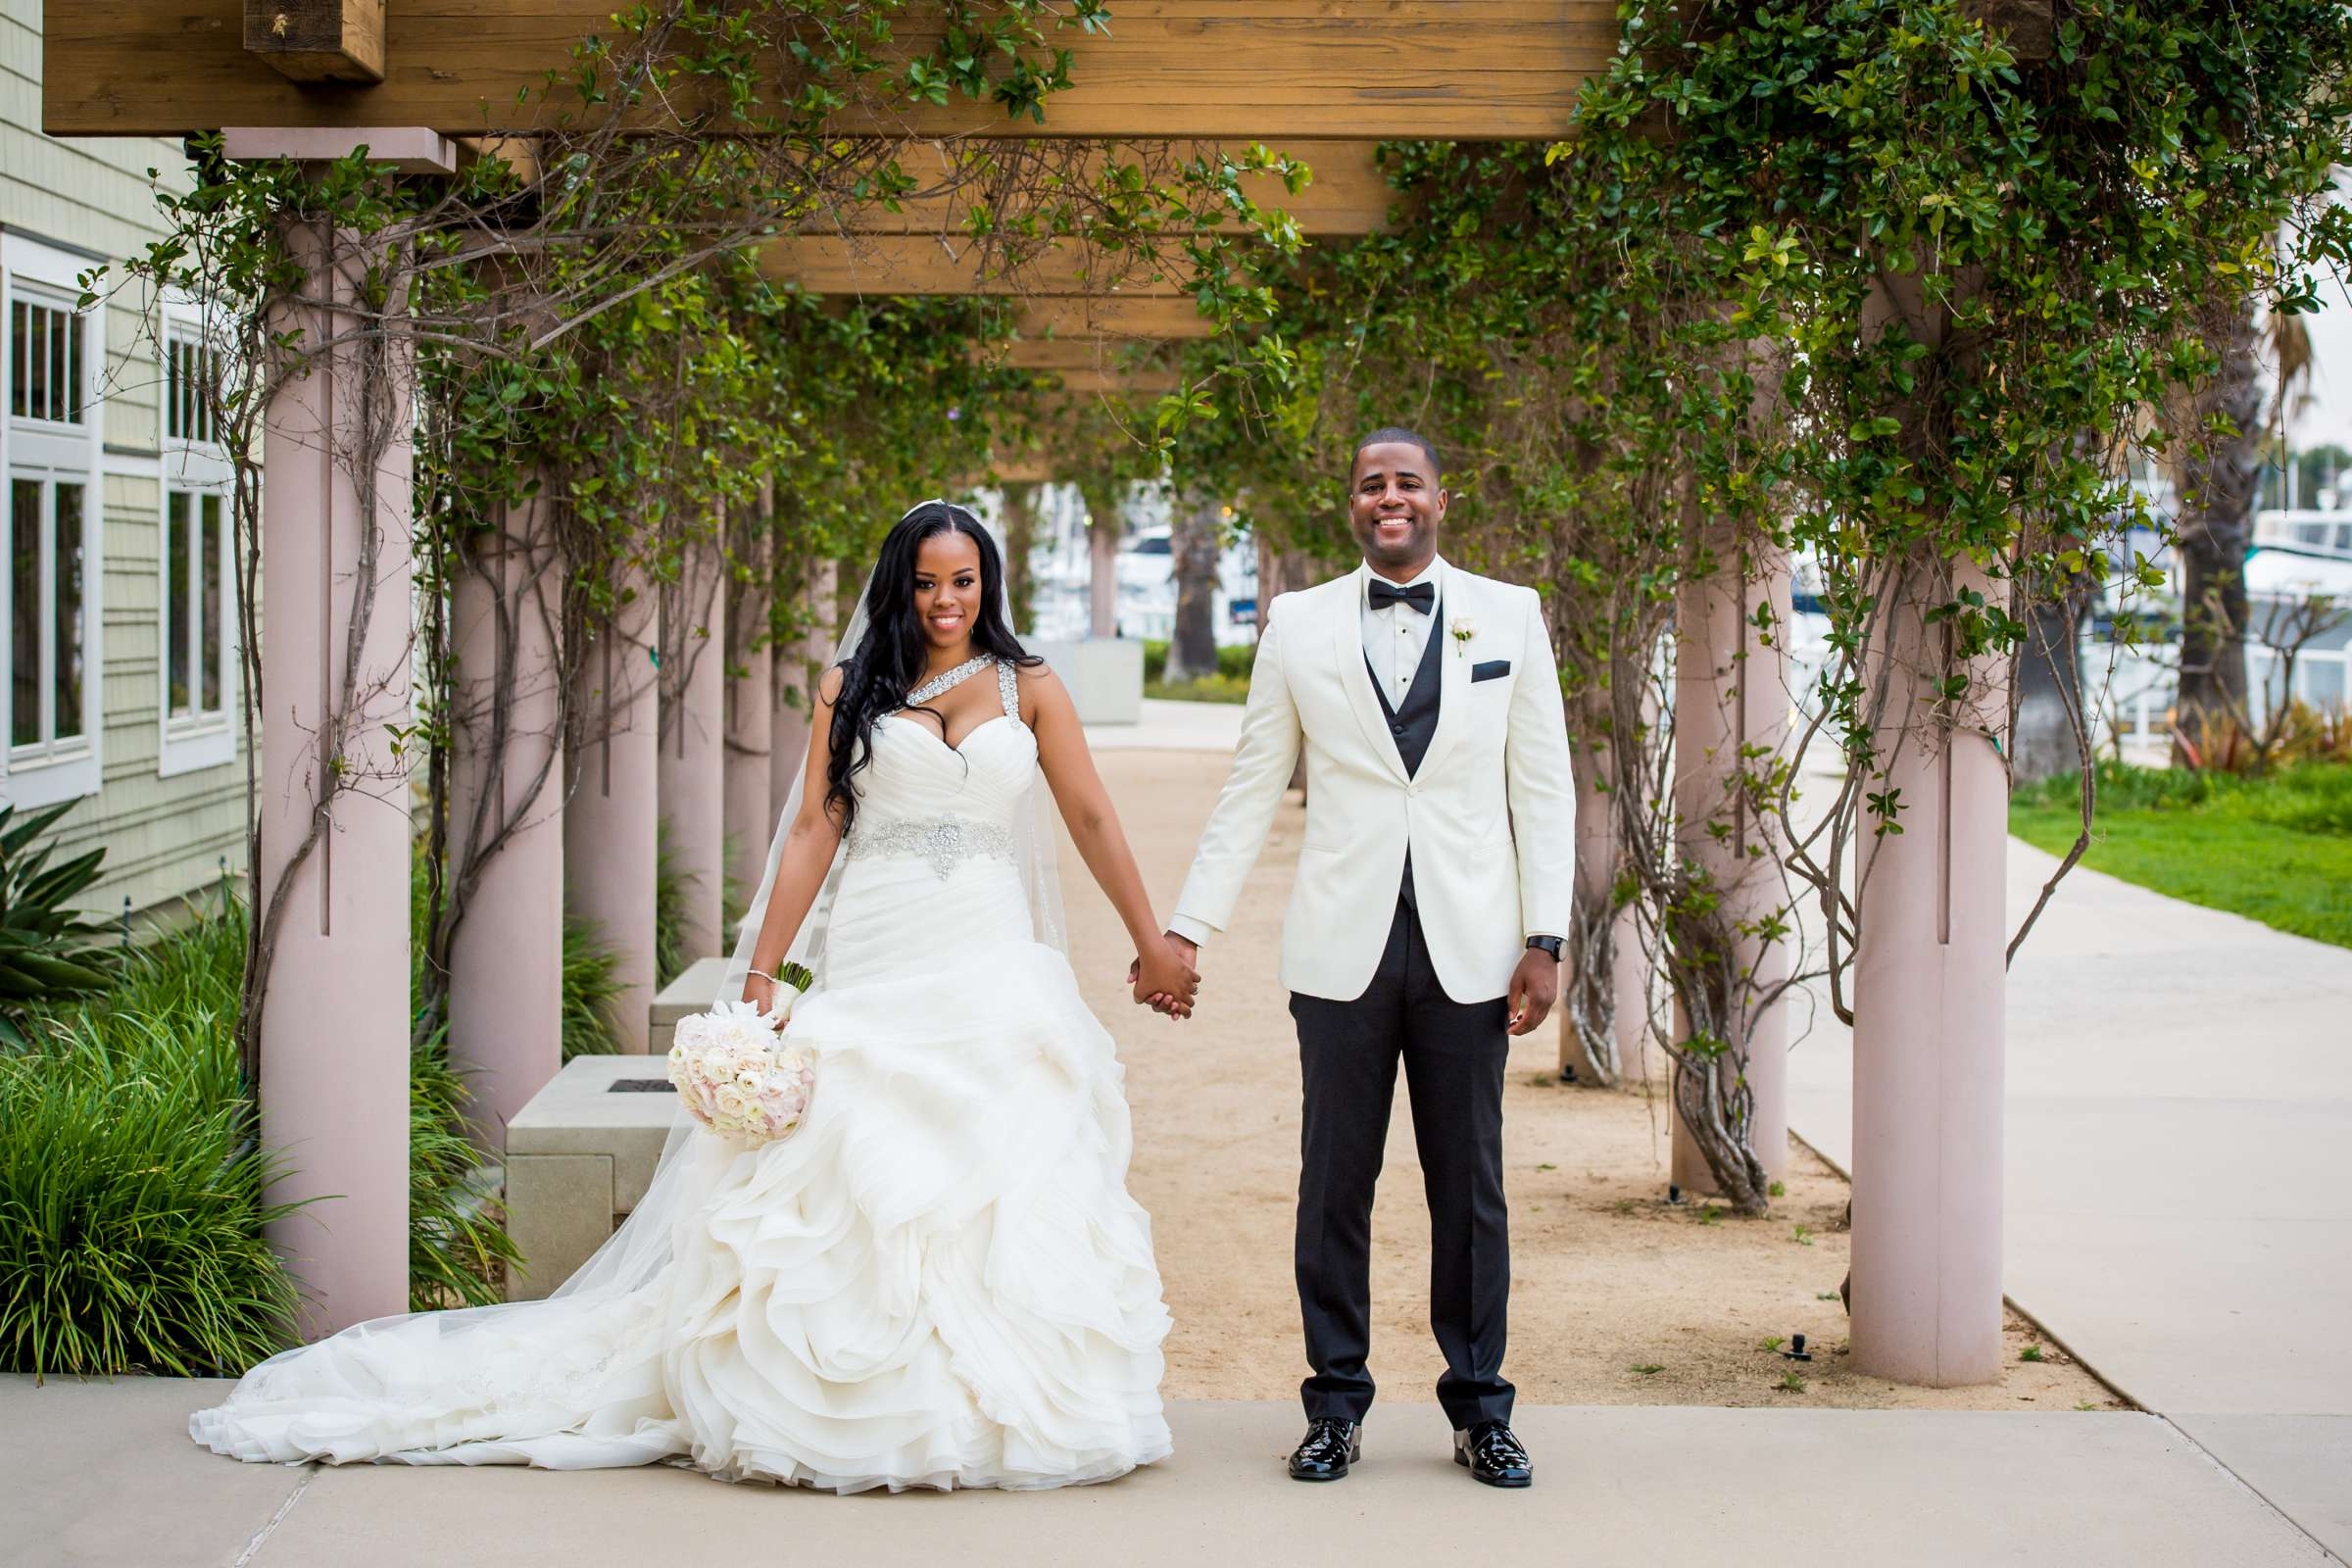 Coronado Community Center Wedding coordinated by First Comes Love Weddings & Events, Nikia and Charles Wedding Photo #65 by True Photography